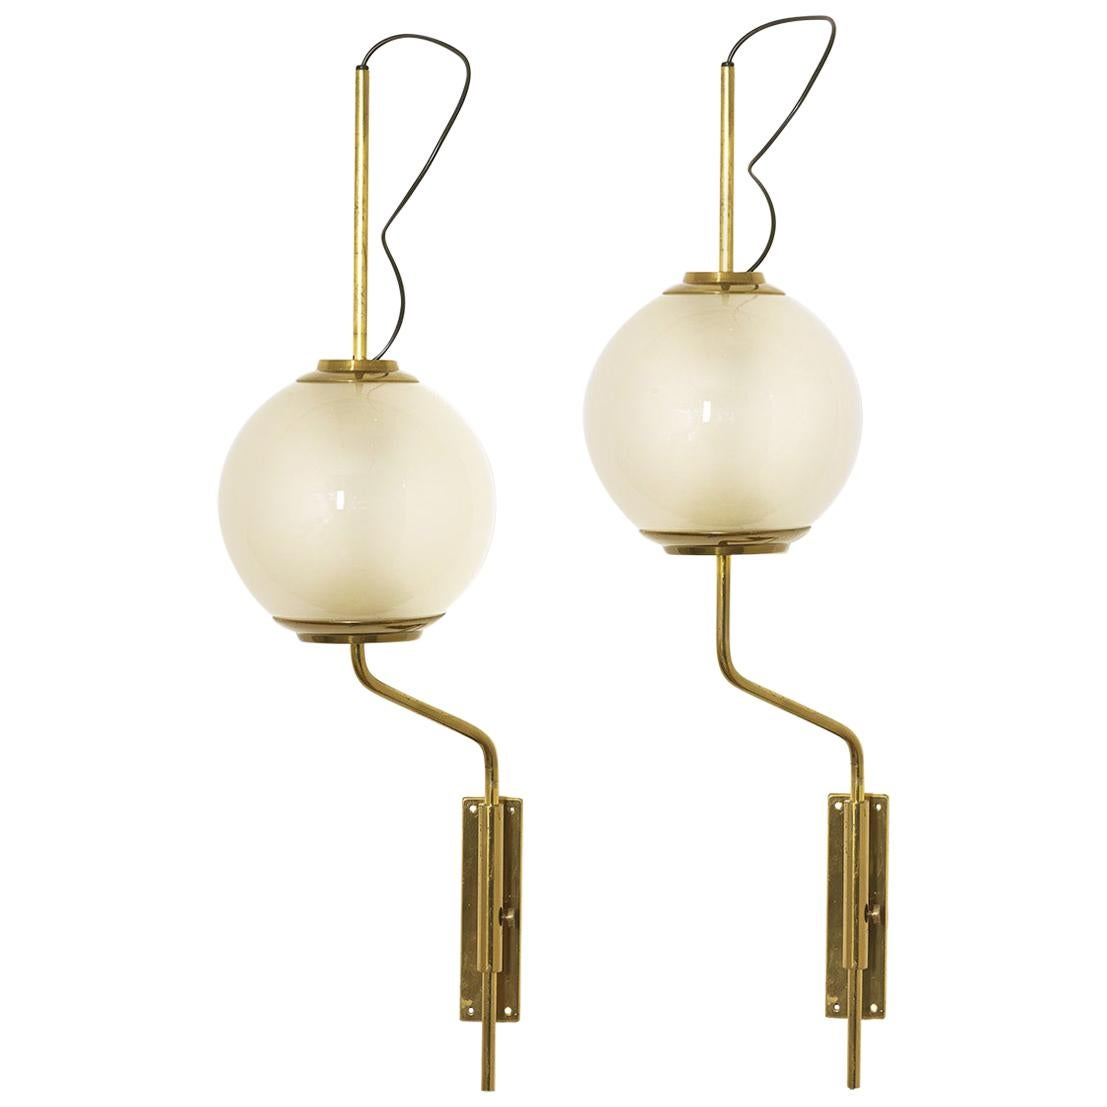 Pair of LP11 or Pallone Brass Wall Lamps by Luigi Caccia Dominioni, Azucena 1958